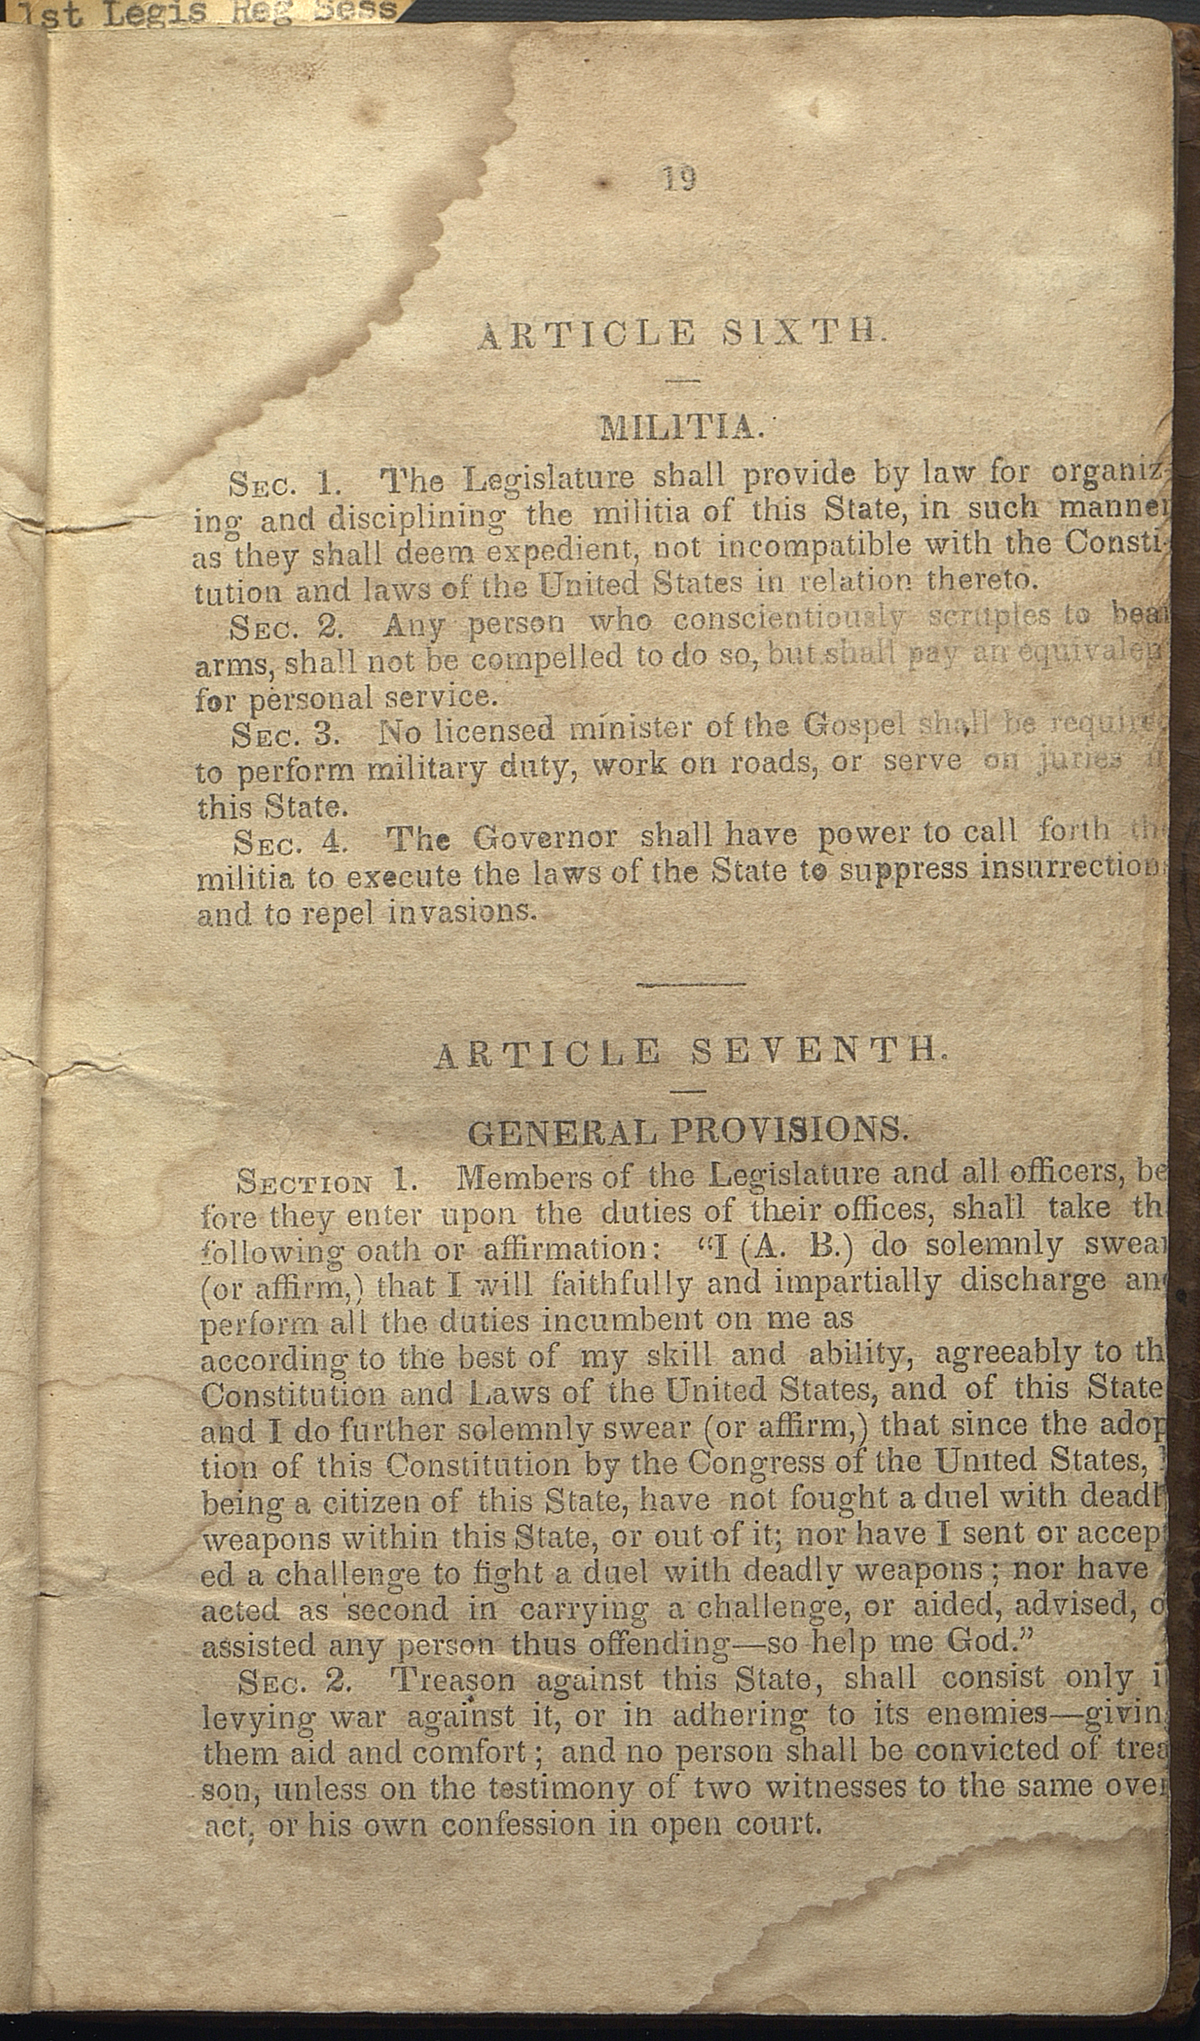 Article VII, Sections 1-2